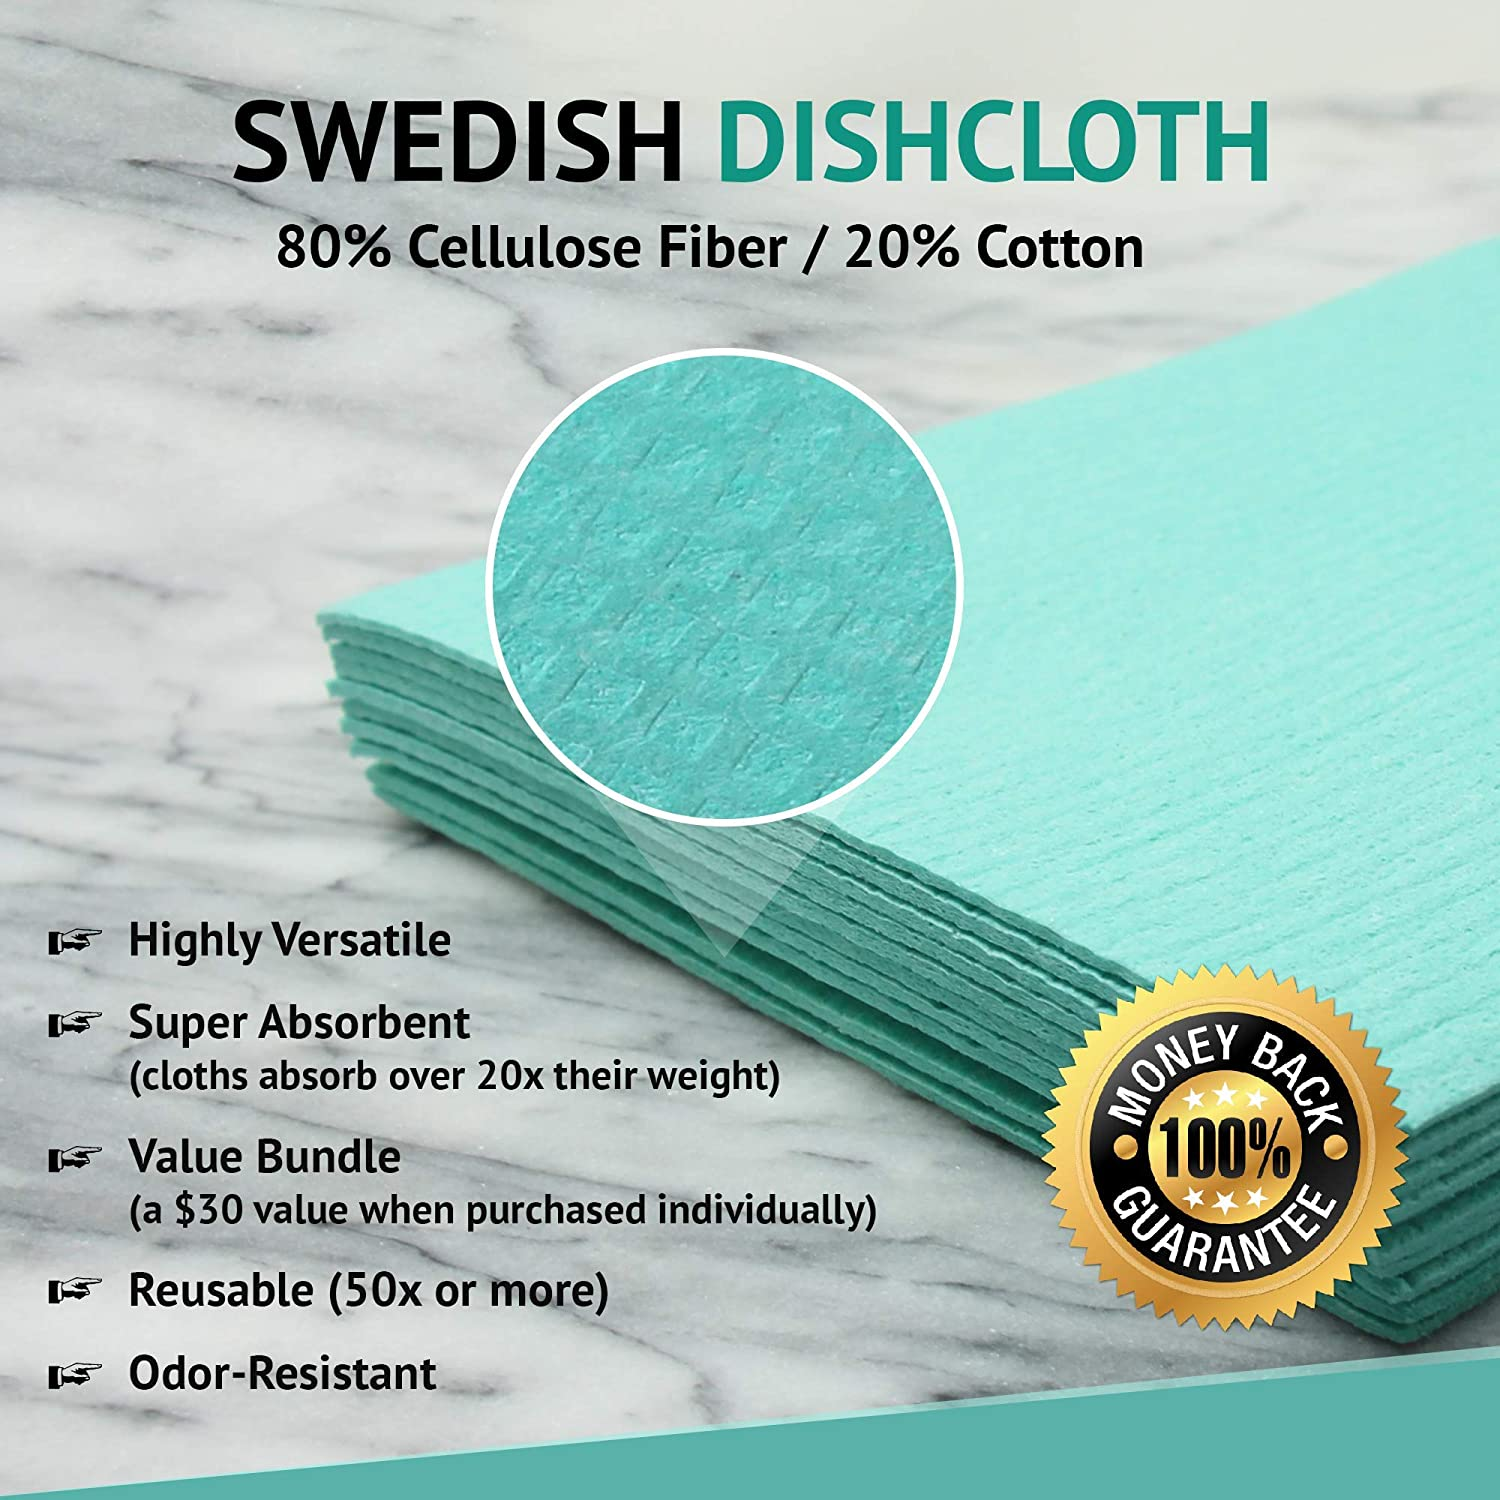 Swedish dish cloth